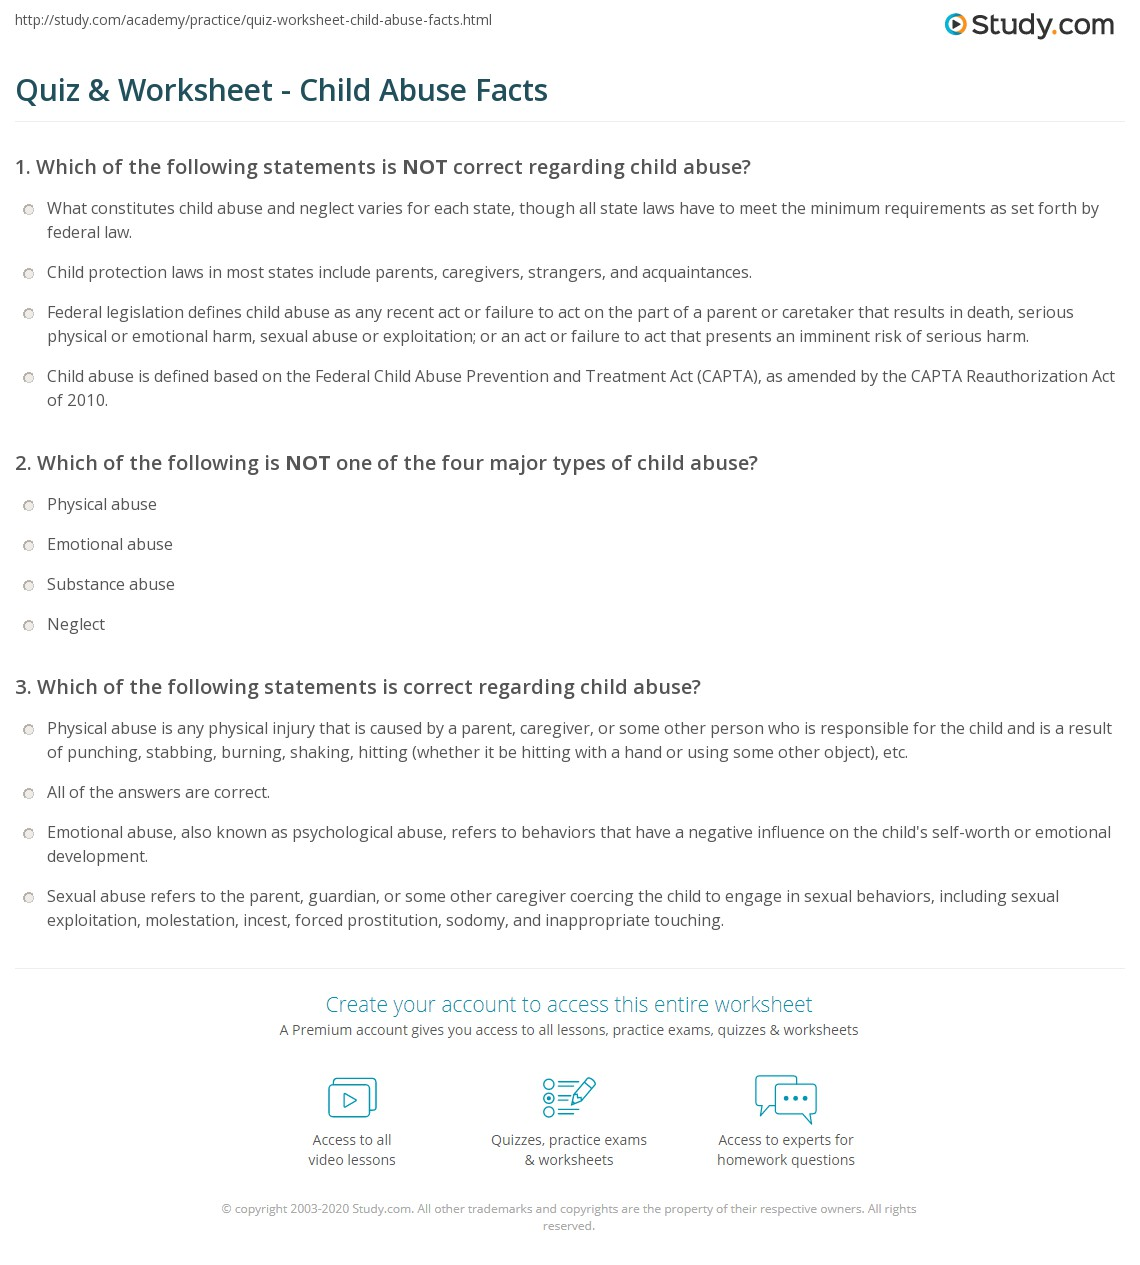 quiz & worksheet - child abuse facts | study